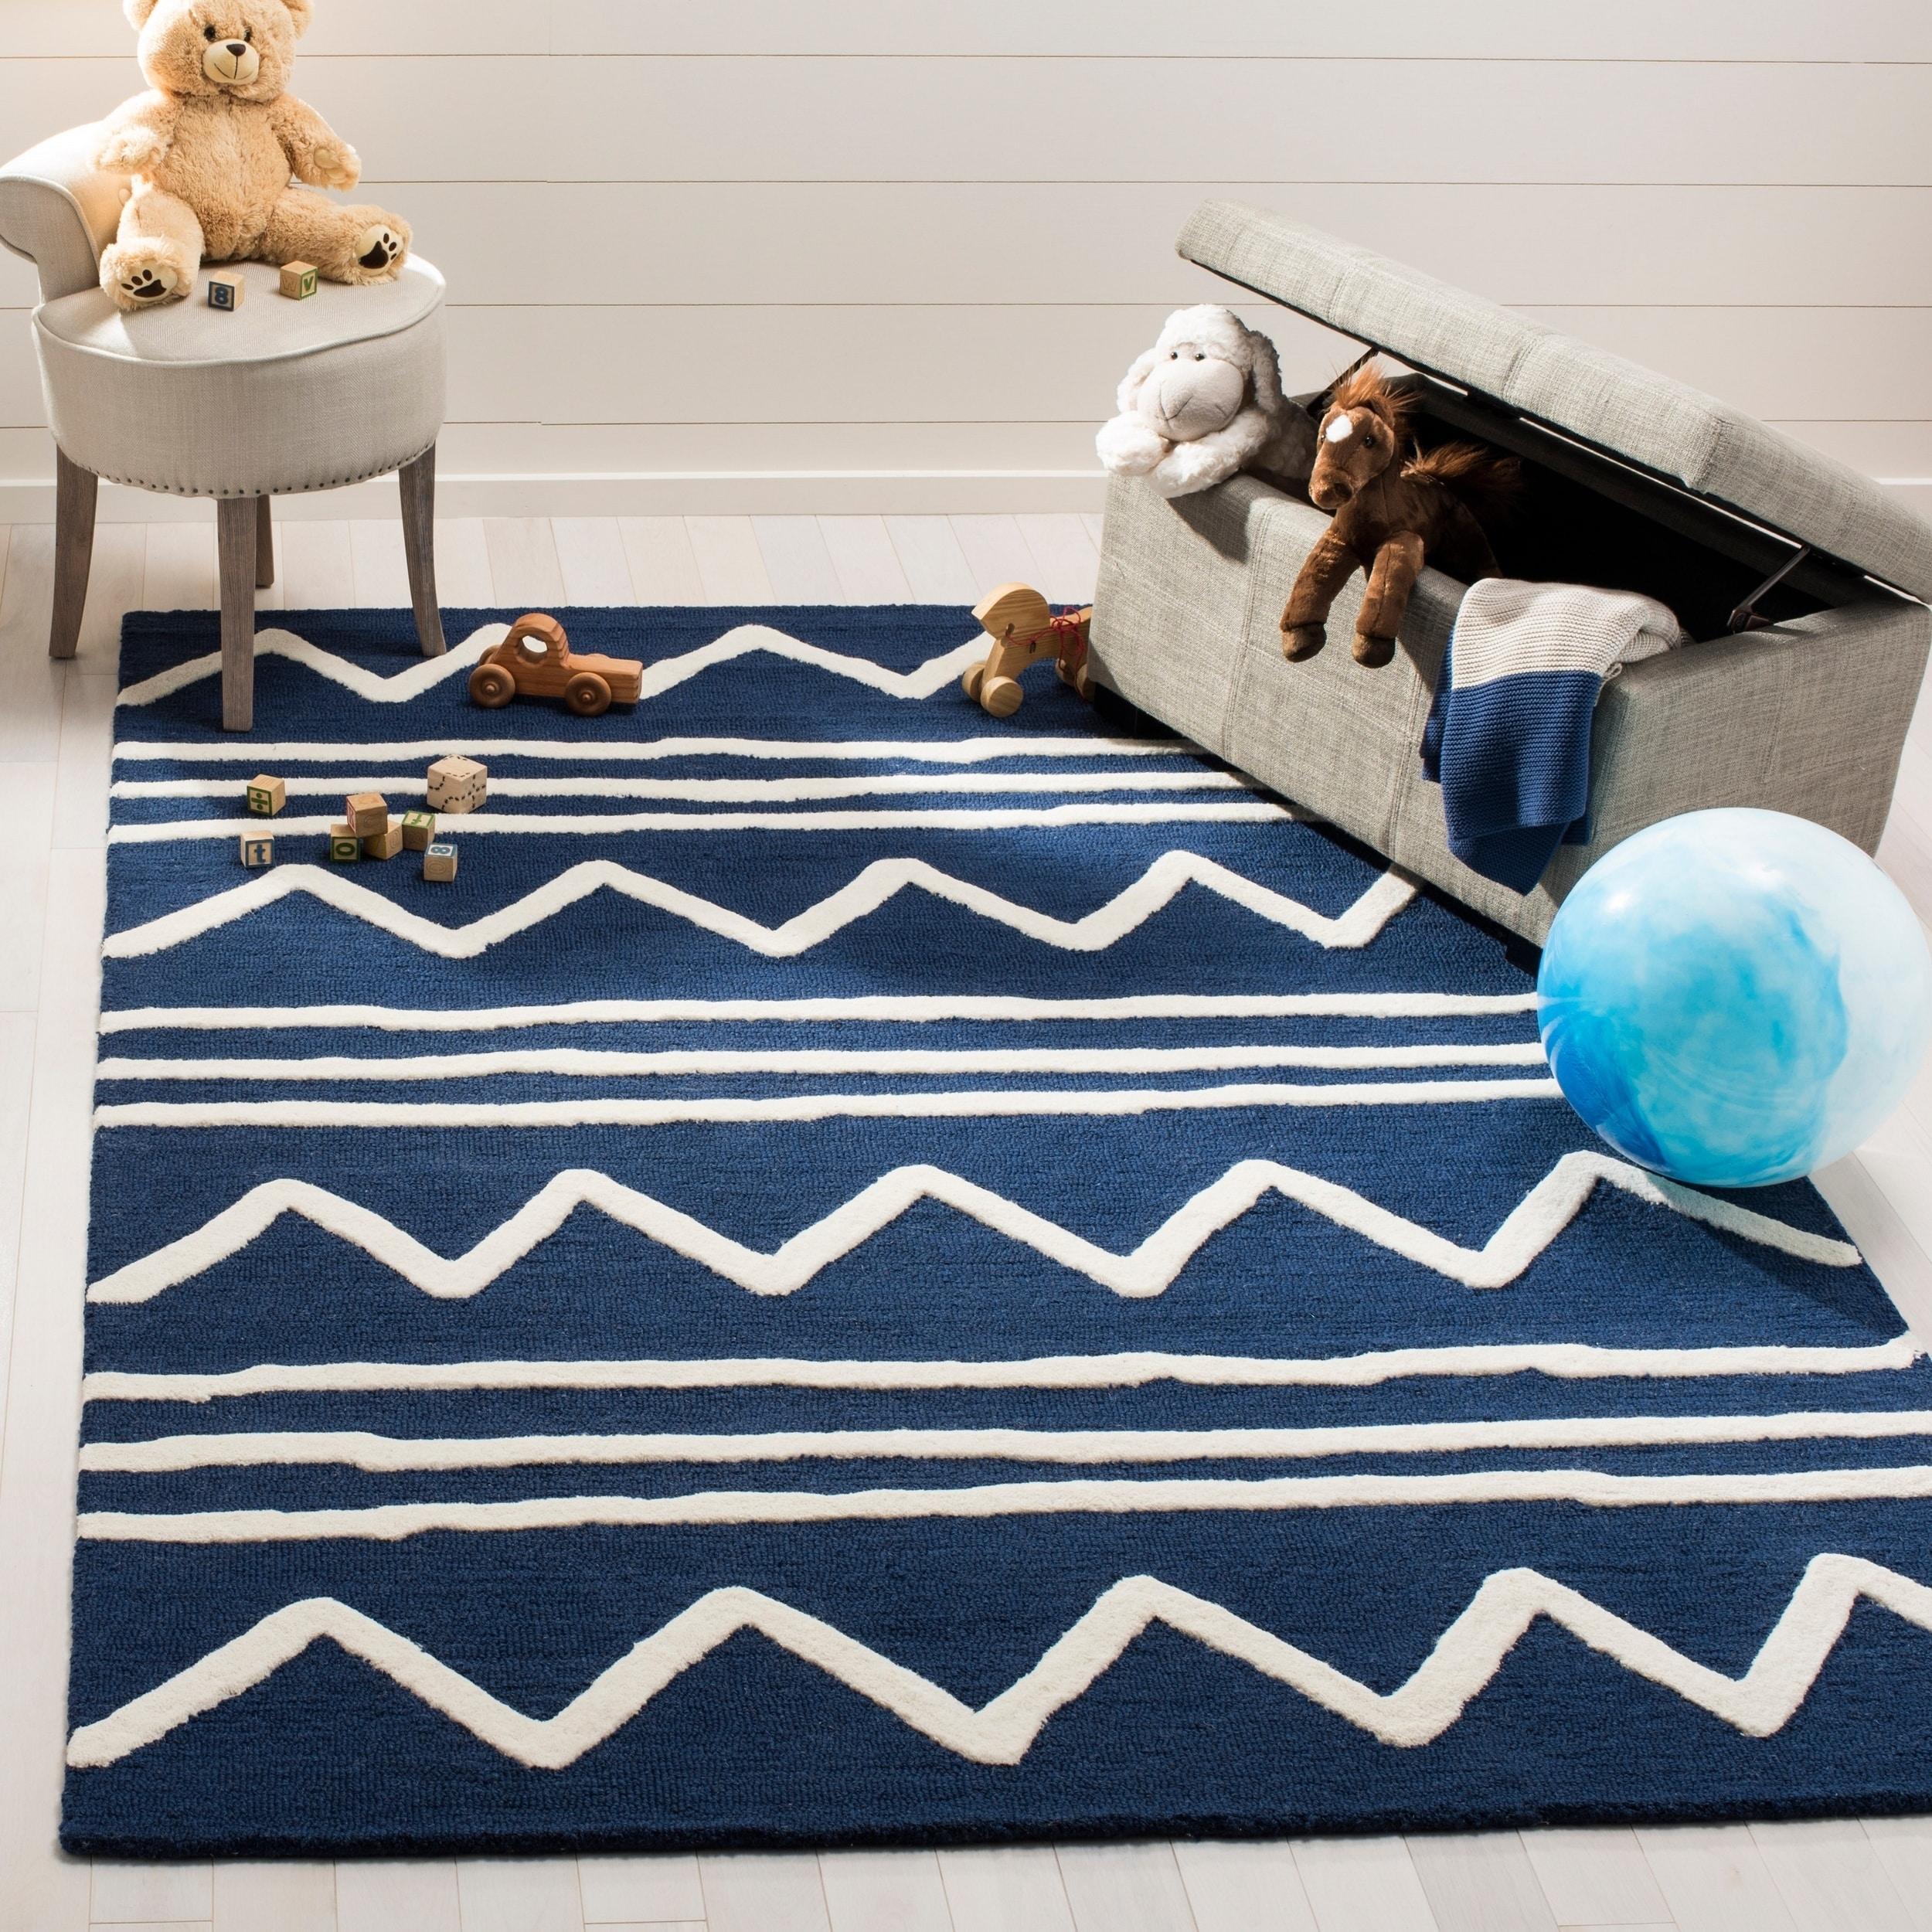 Safavieh Kids Transitional Geometric Hand Tufted Wool Navy Ivory Area Rug 5 X 7 On Free Shipping Today 16600827